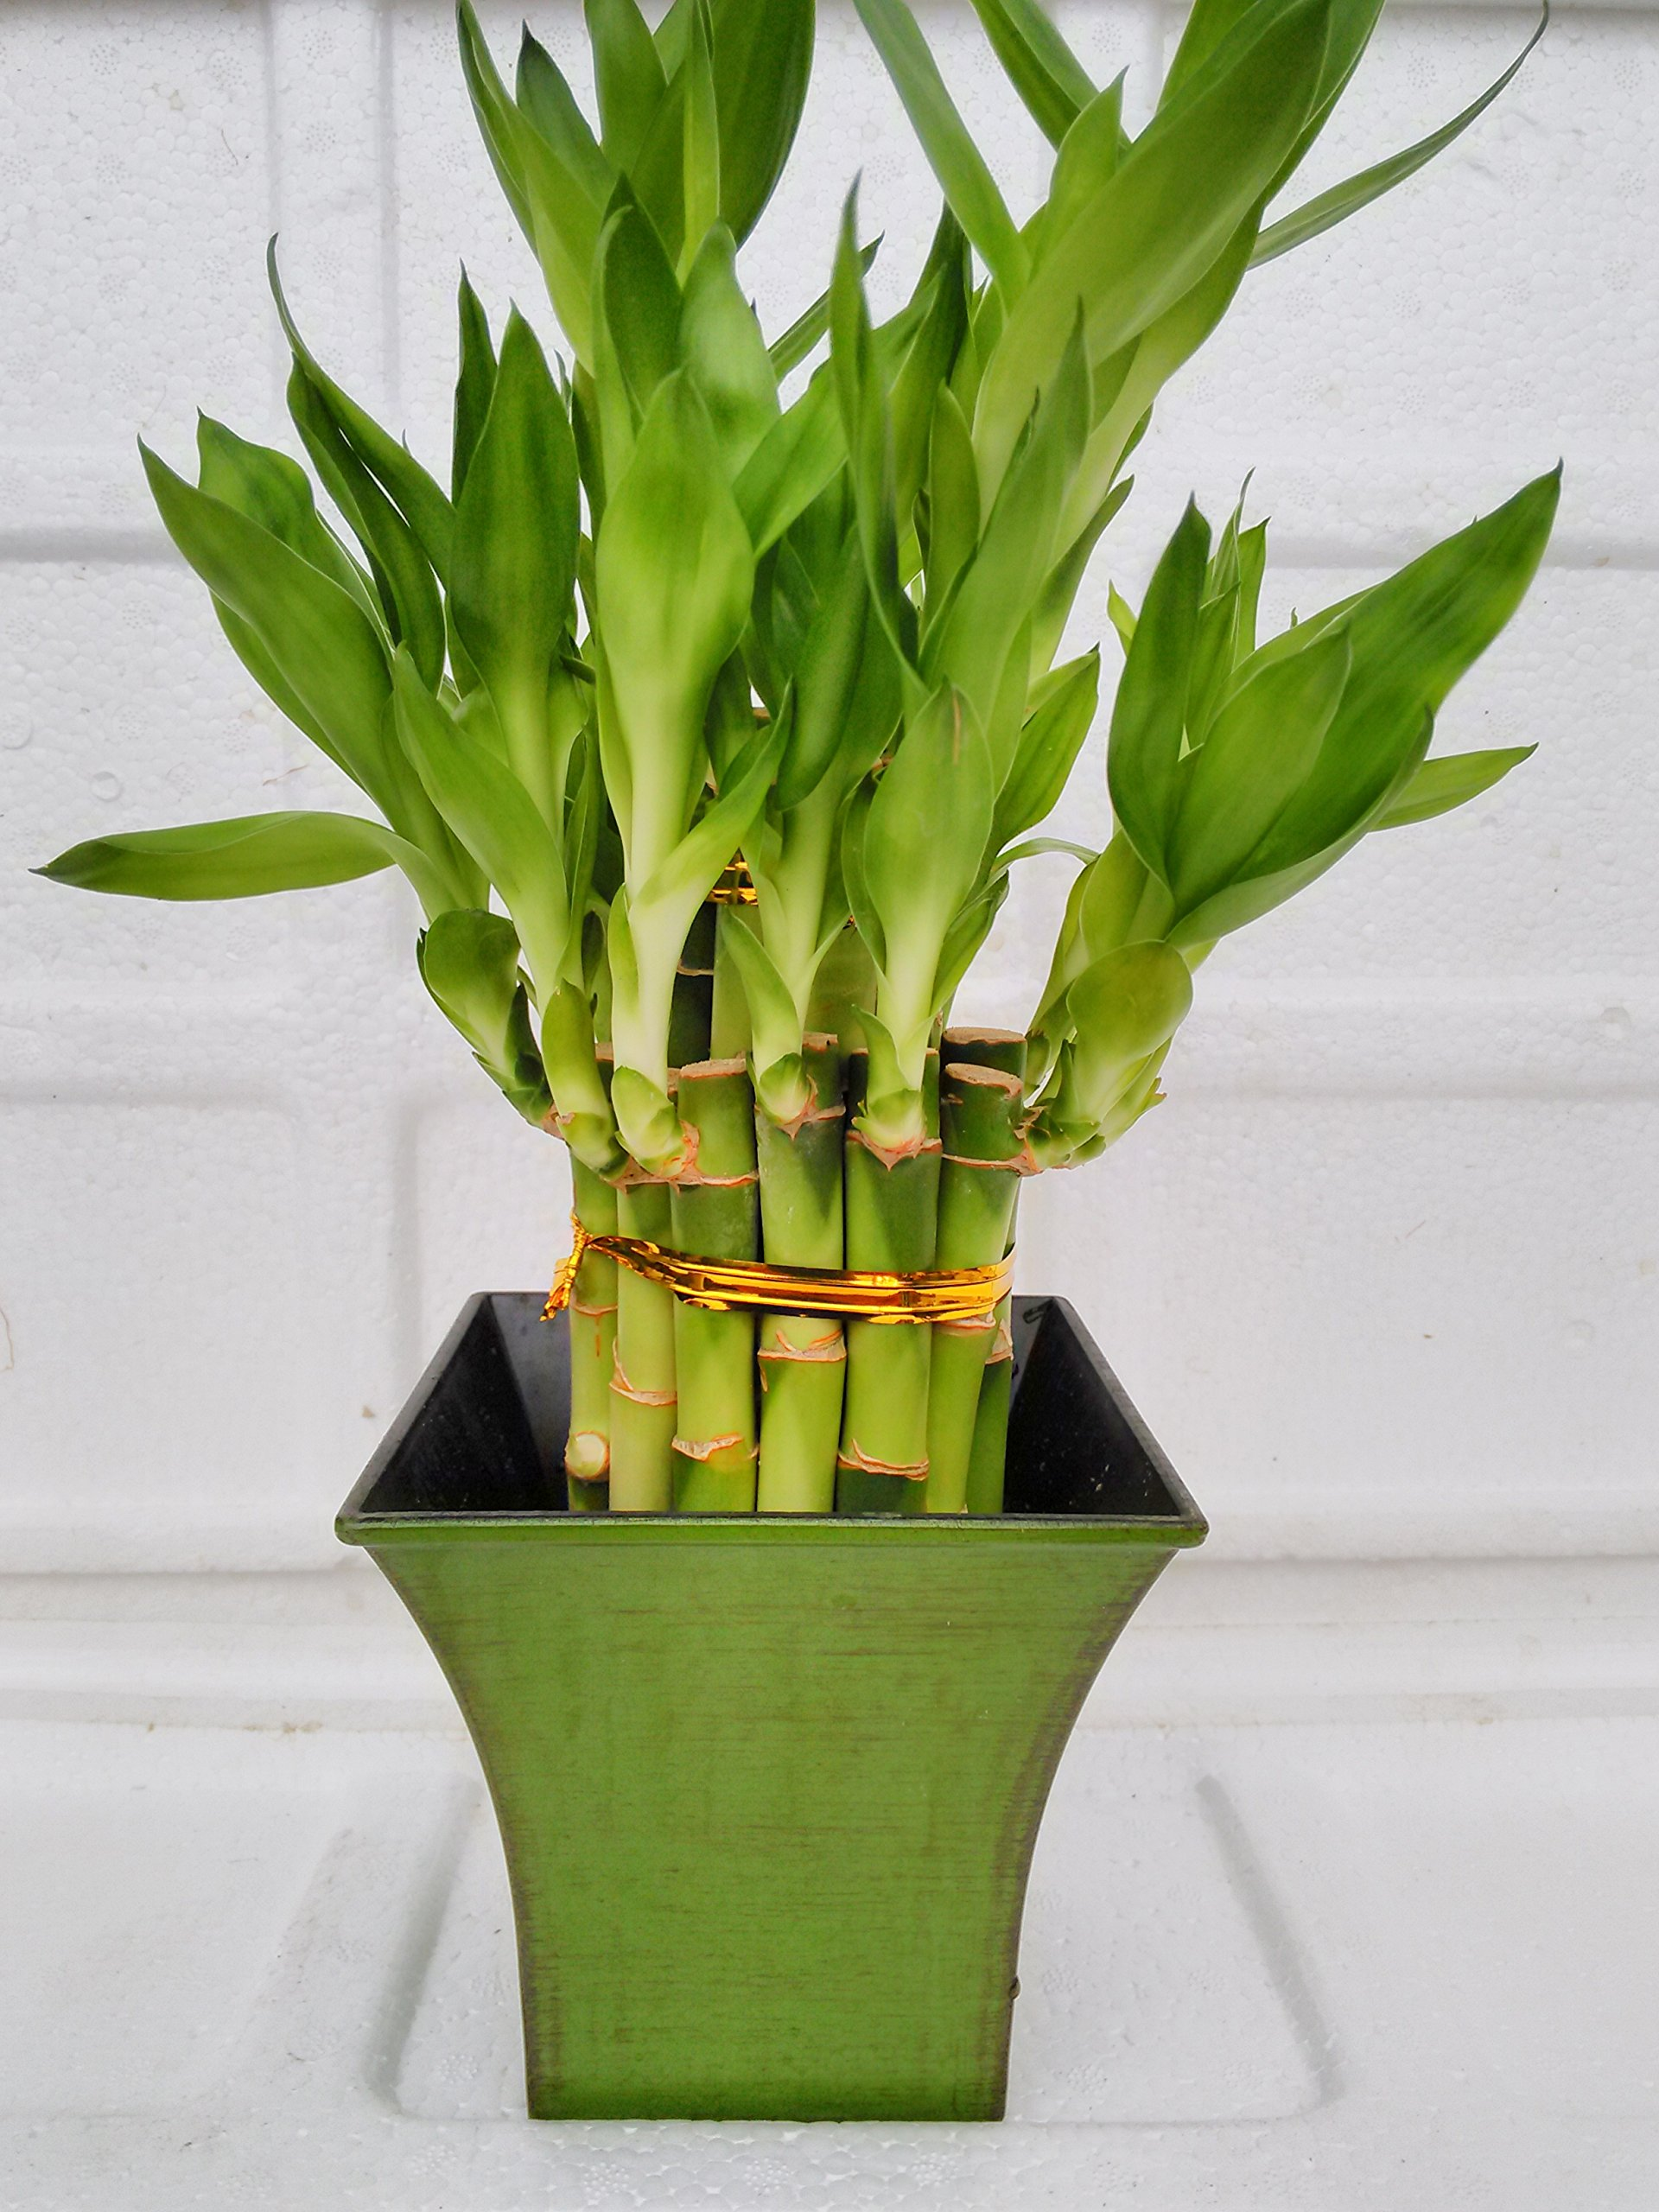 Jmbamboo - 2 Tier Lucky Bamboo - 6'' & 4'' Lucky Bamboos in 2 Tiers - Feng Shui - With 5'' Vase Color Moss Green